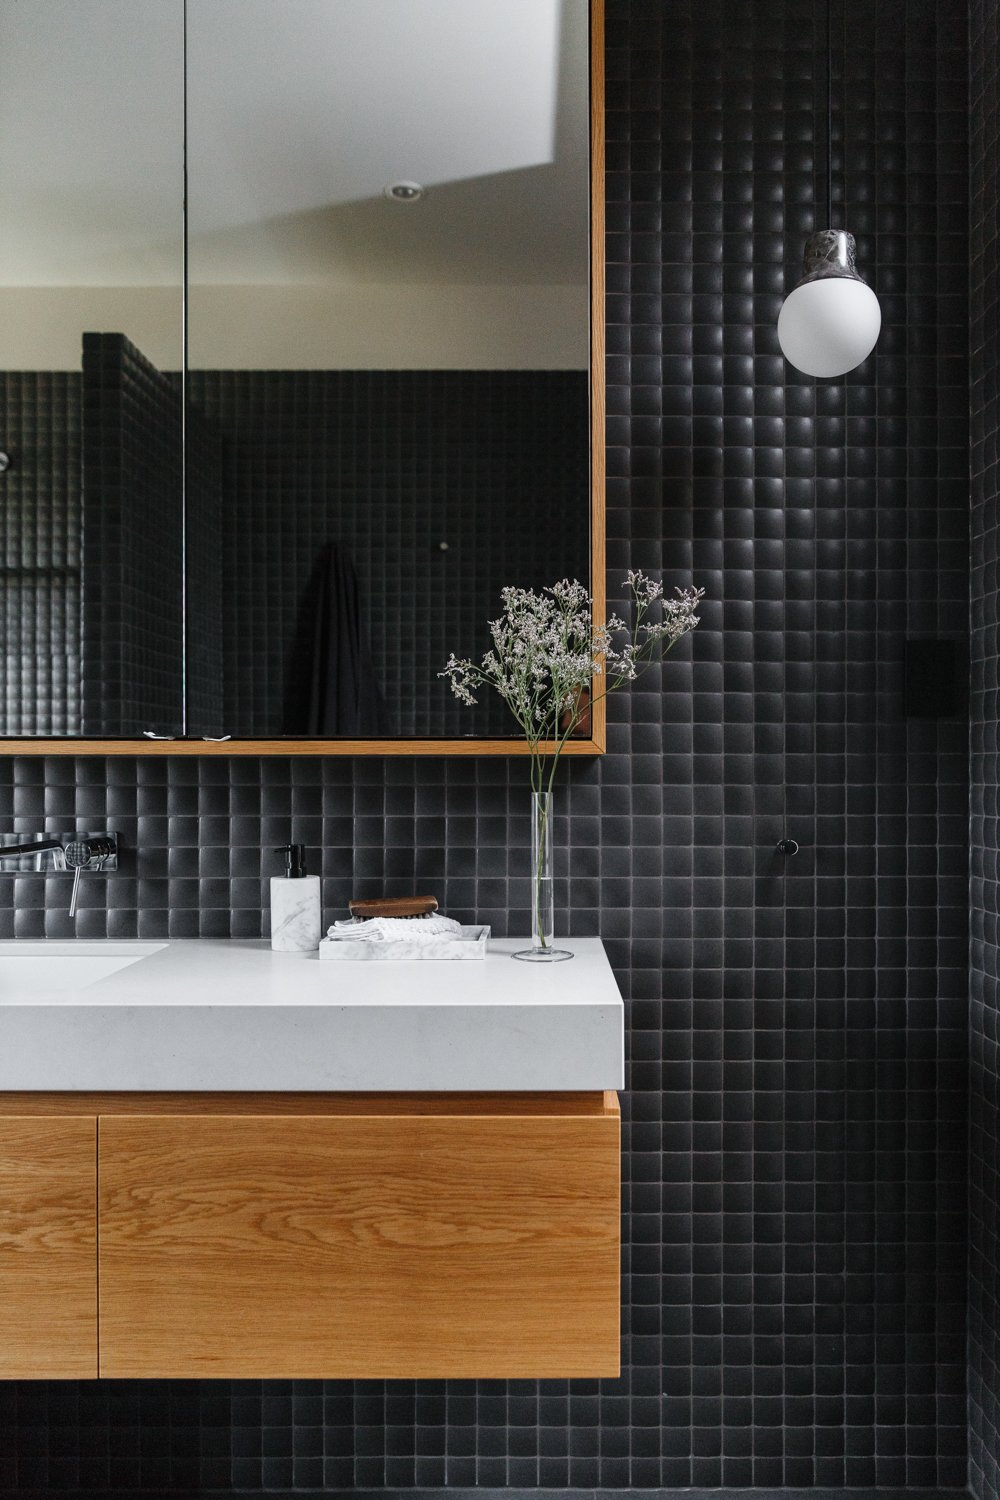 Bath Room, Ceramic Tile Wall, Wall Lighting, and Wall Mount Sink  Photo 10 of 11 in The Surrounding Countryside Inspires a Family Home in Australia's Adelaide Hills